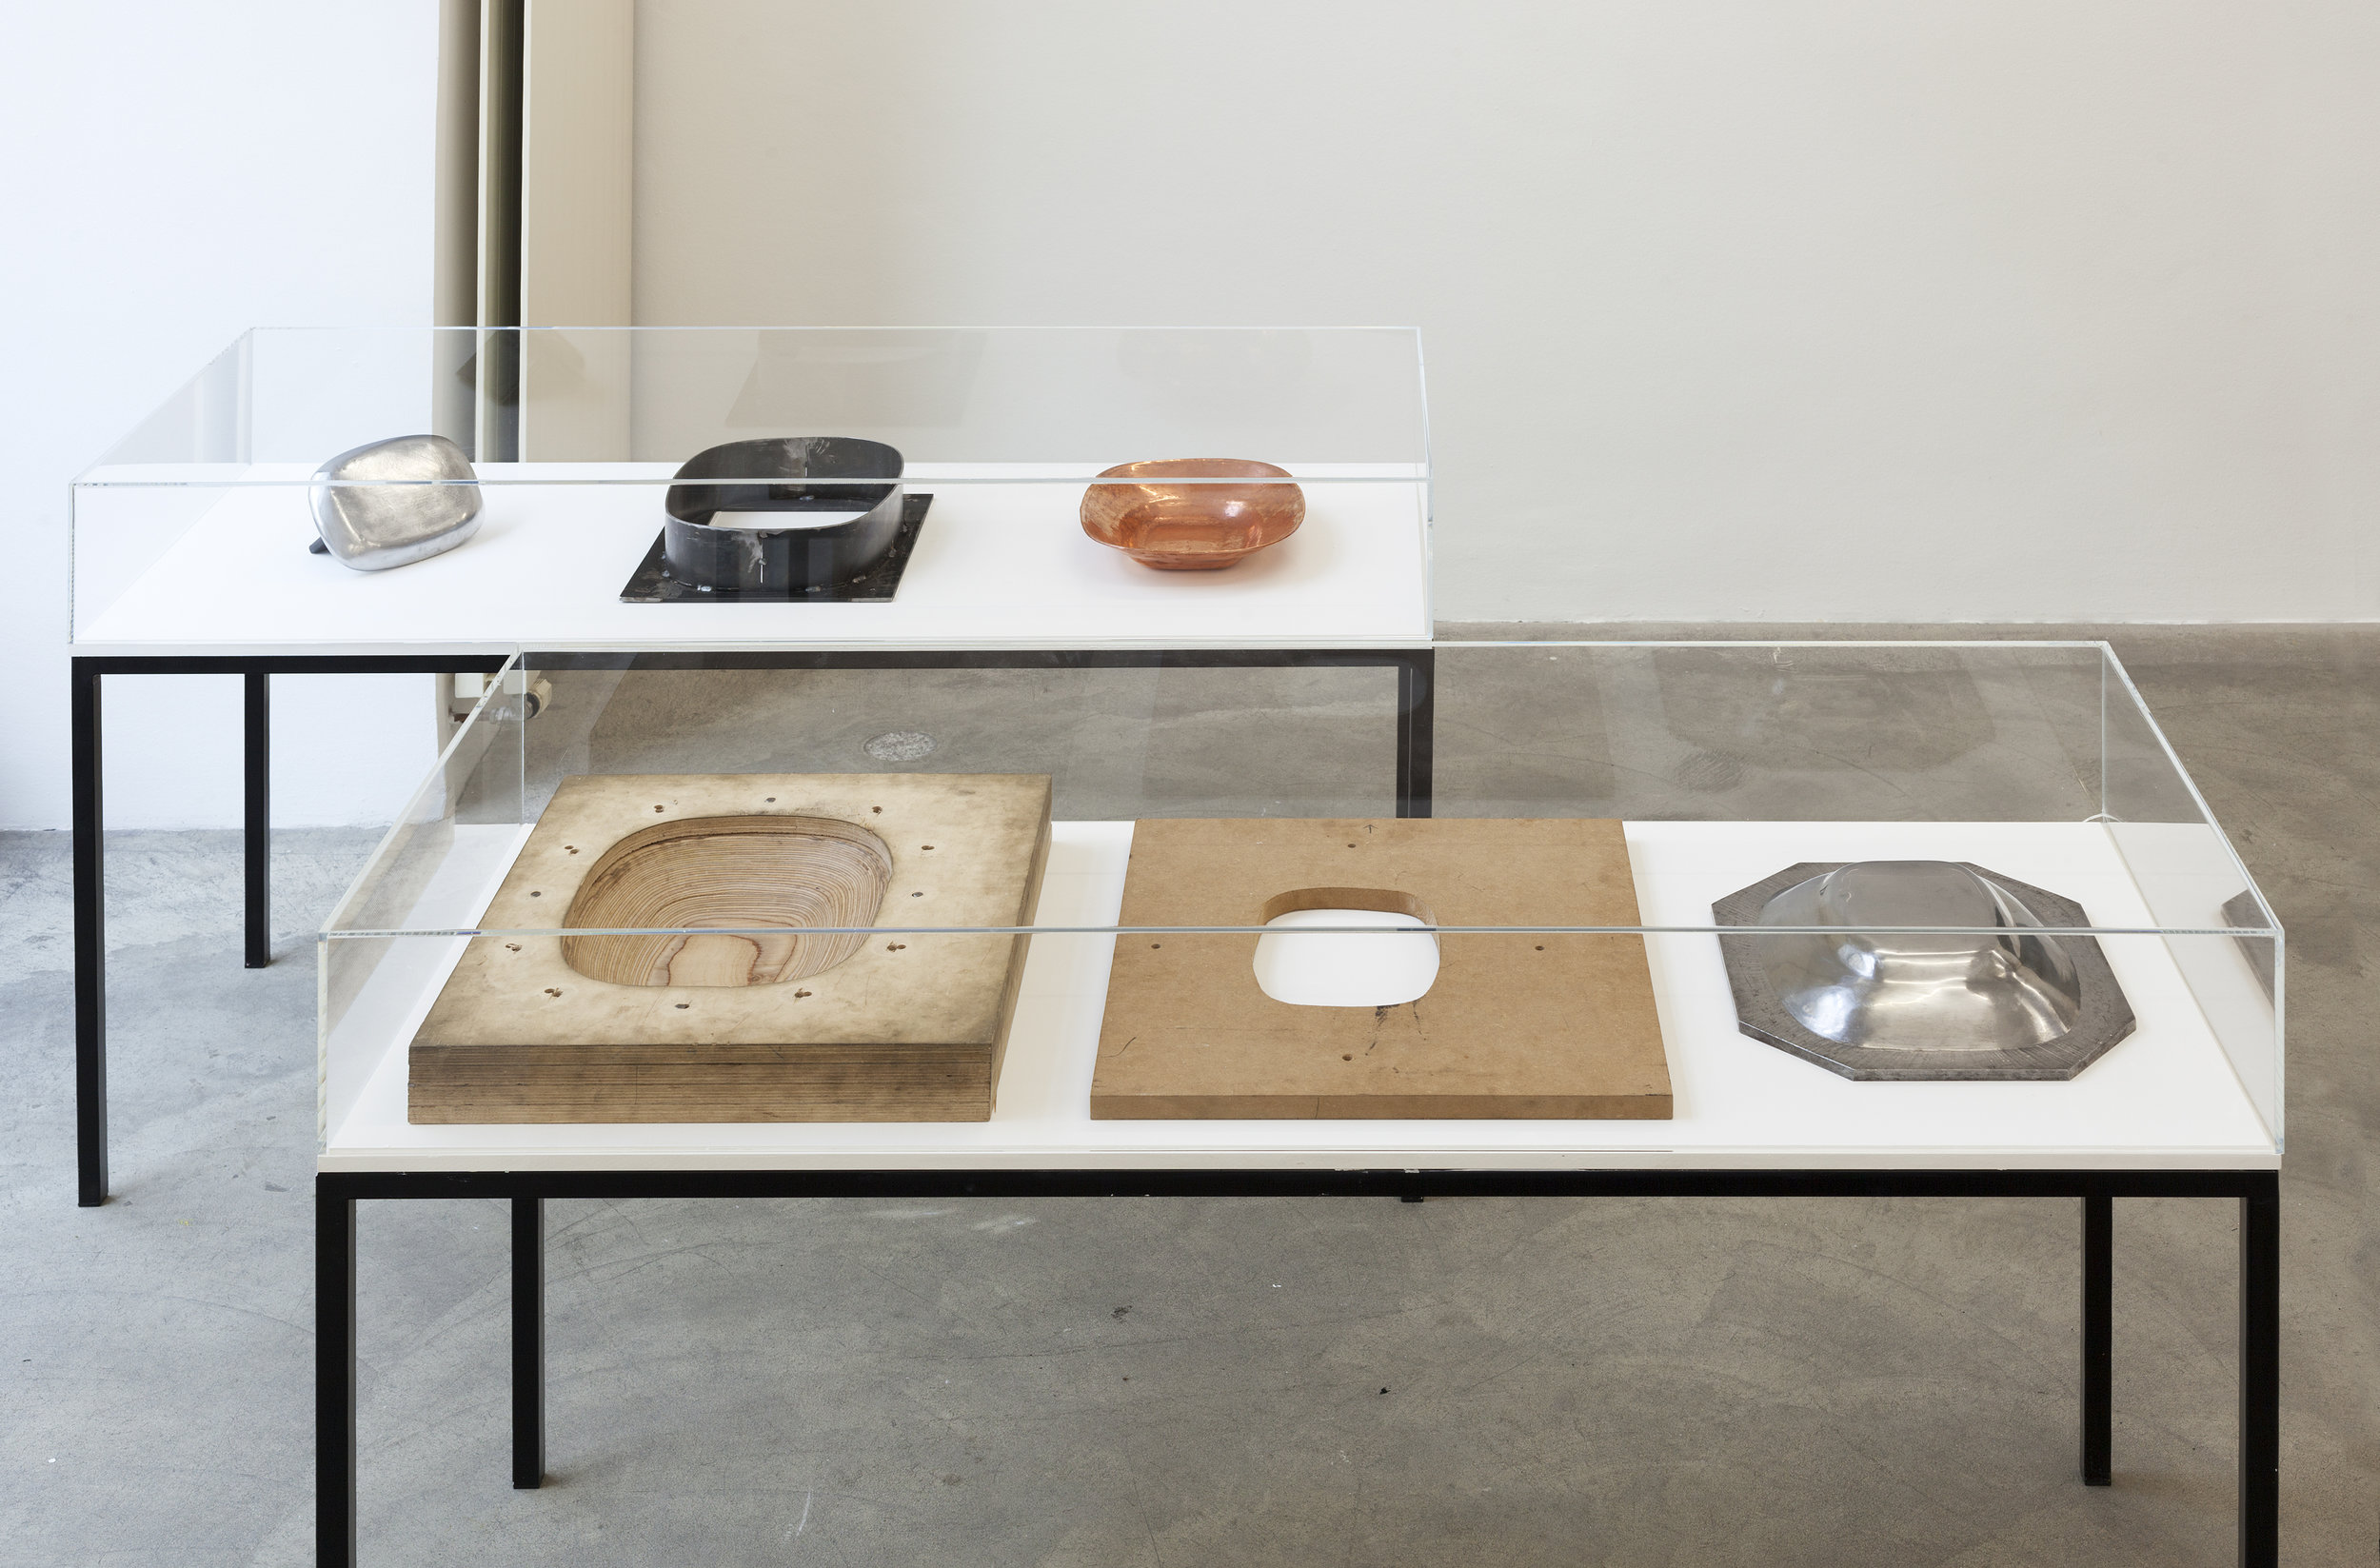 Exhibition View, Galerie Martin Janda, A Mouse Drowned in a Honey Pot curated by_Magalí Arriola, Exhibition View, Photo: Markus Wirgitter, Vienna, 2014